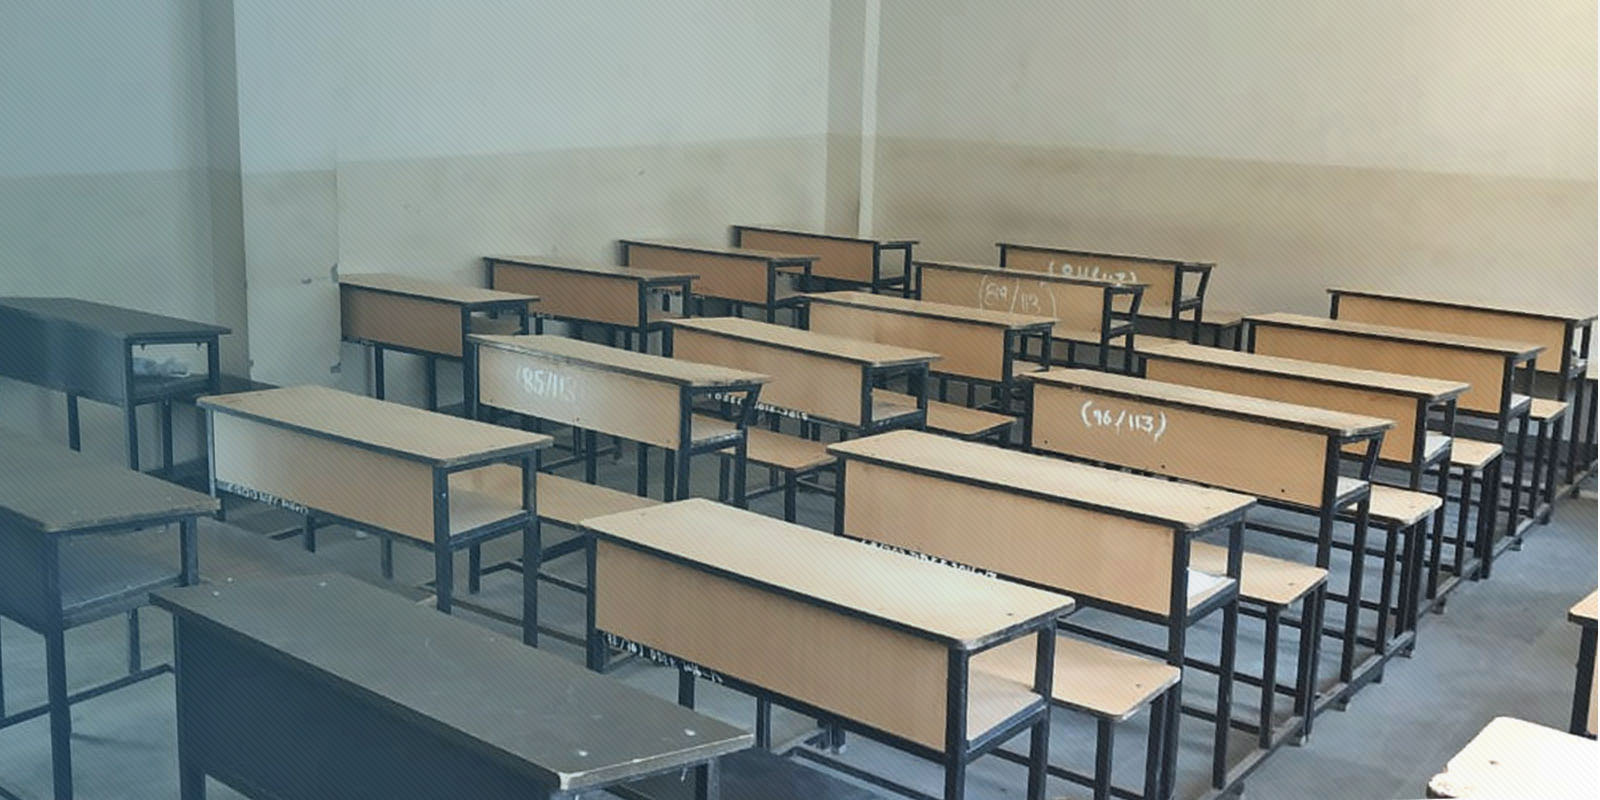 HPBOSE class 12 exams cancelled